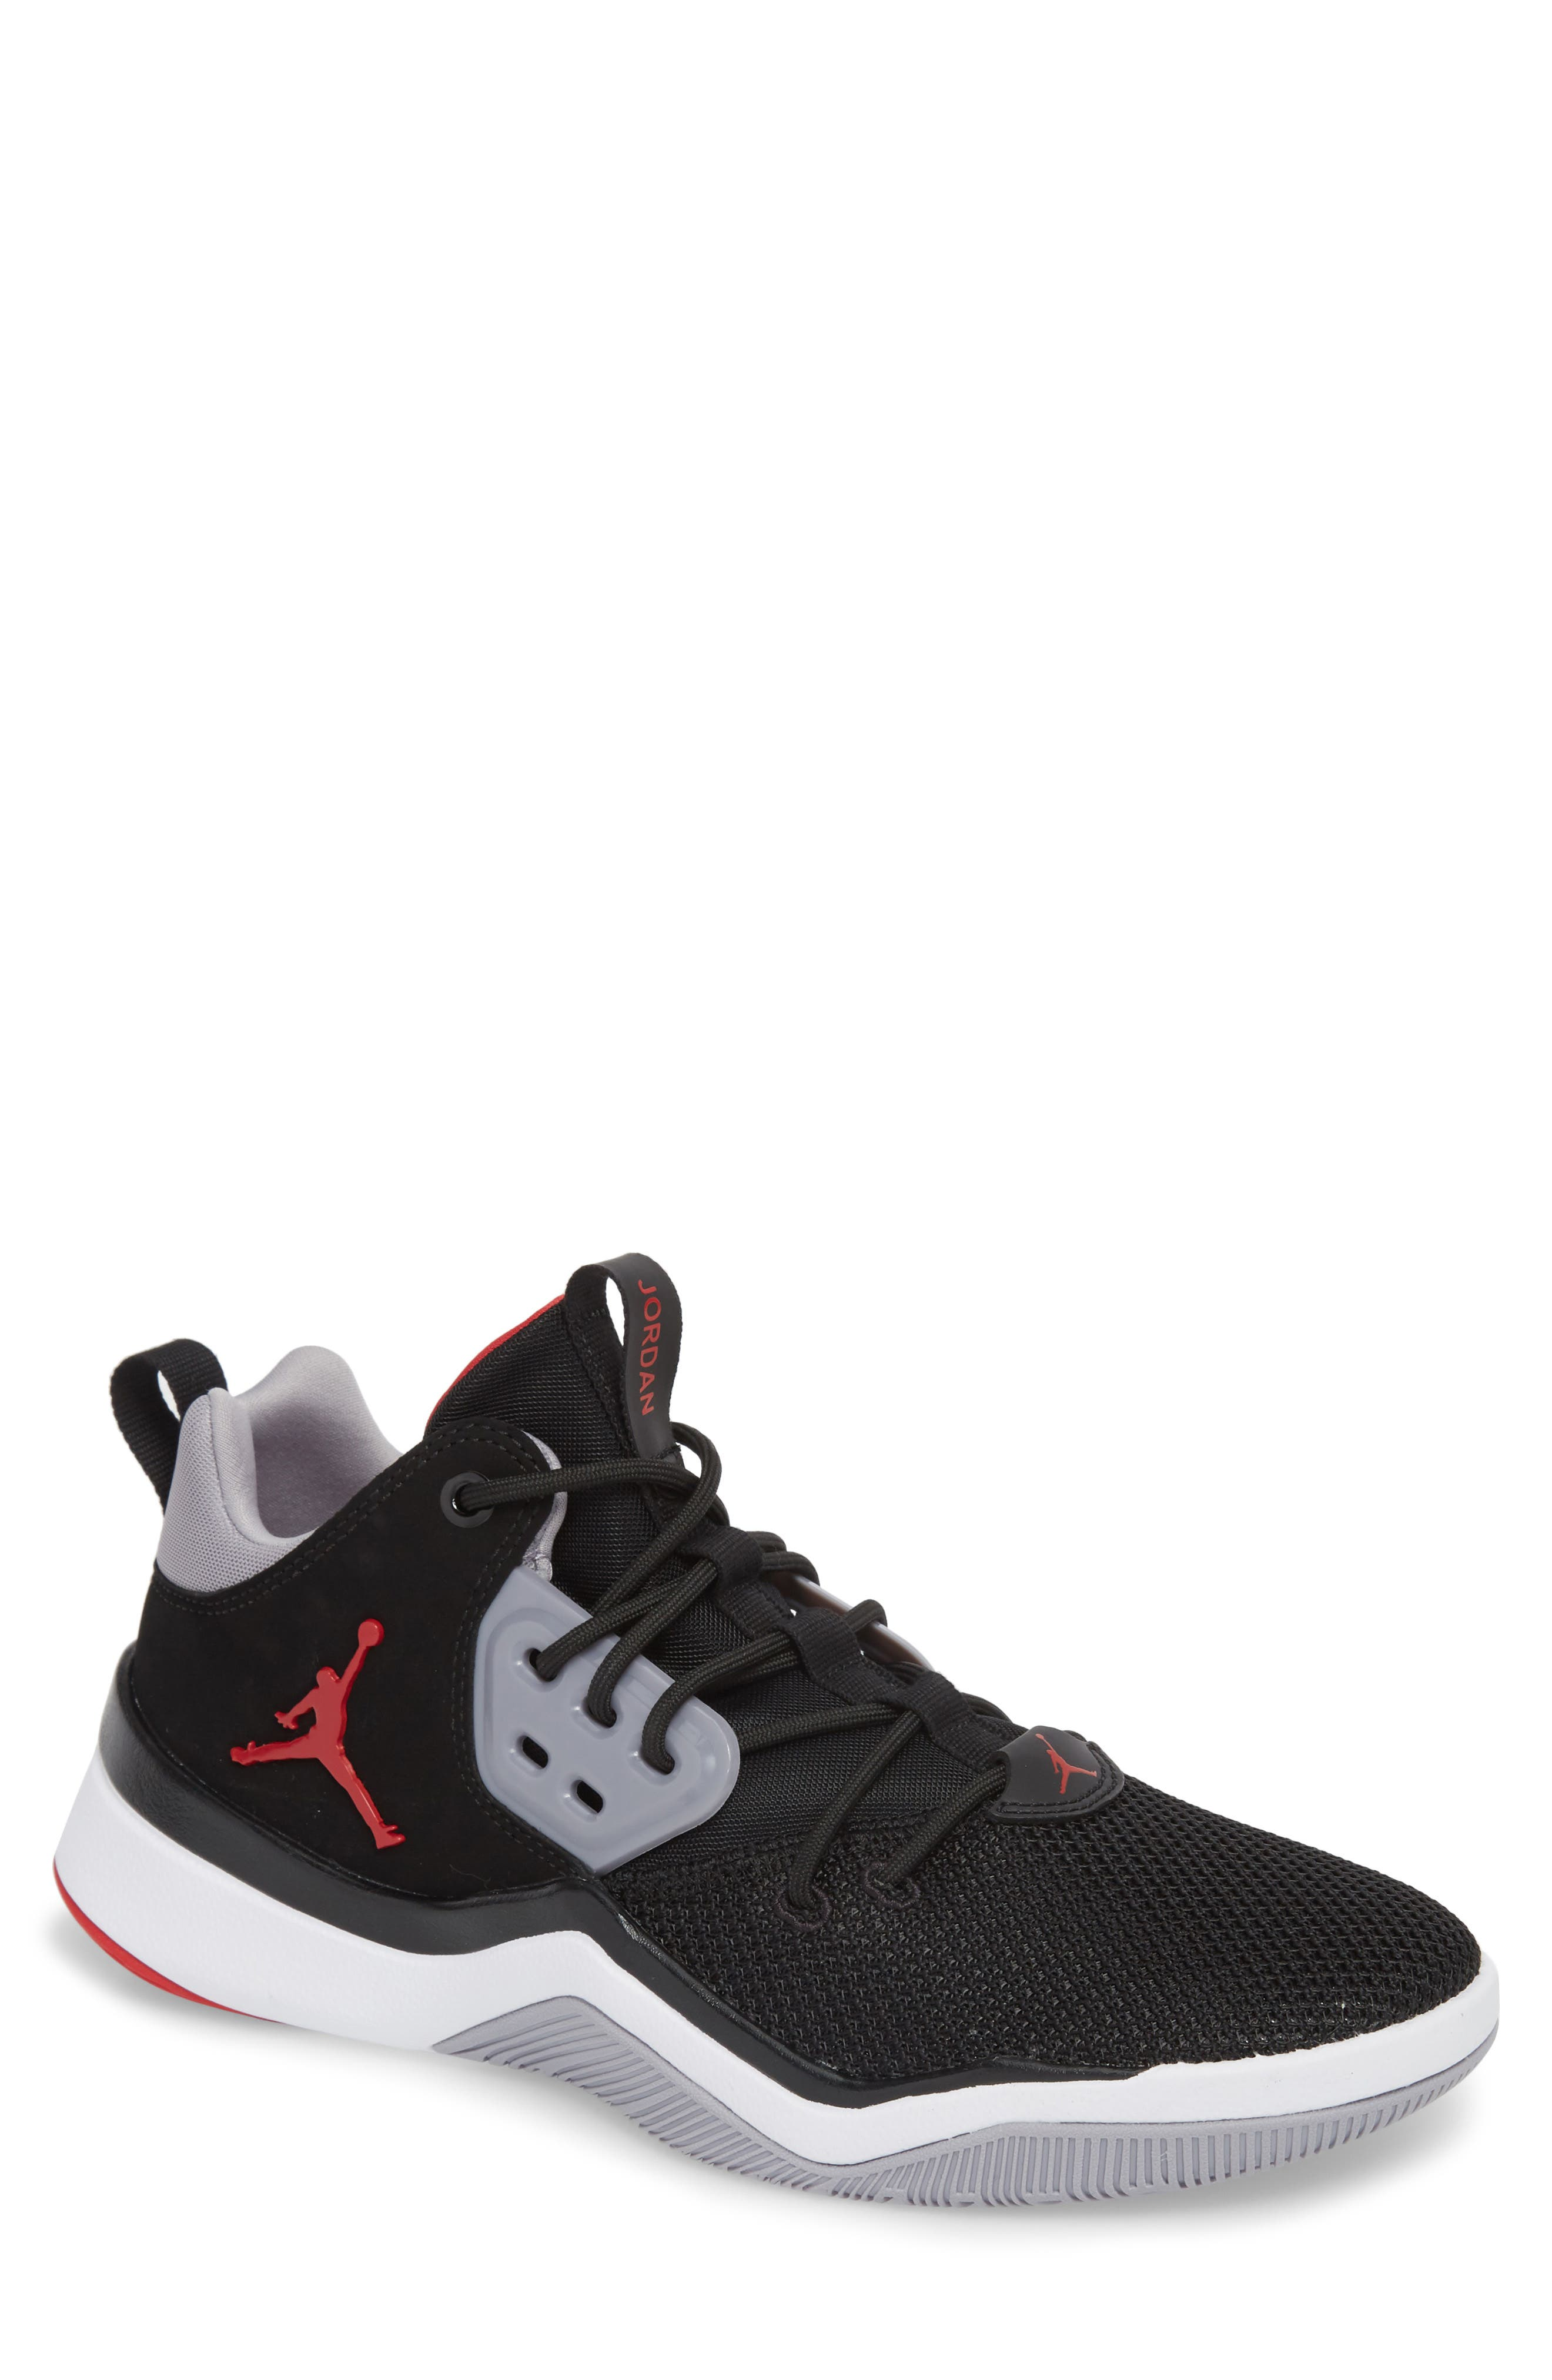 Jordan DNA Sneaker,                         Main,                         color, 001